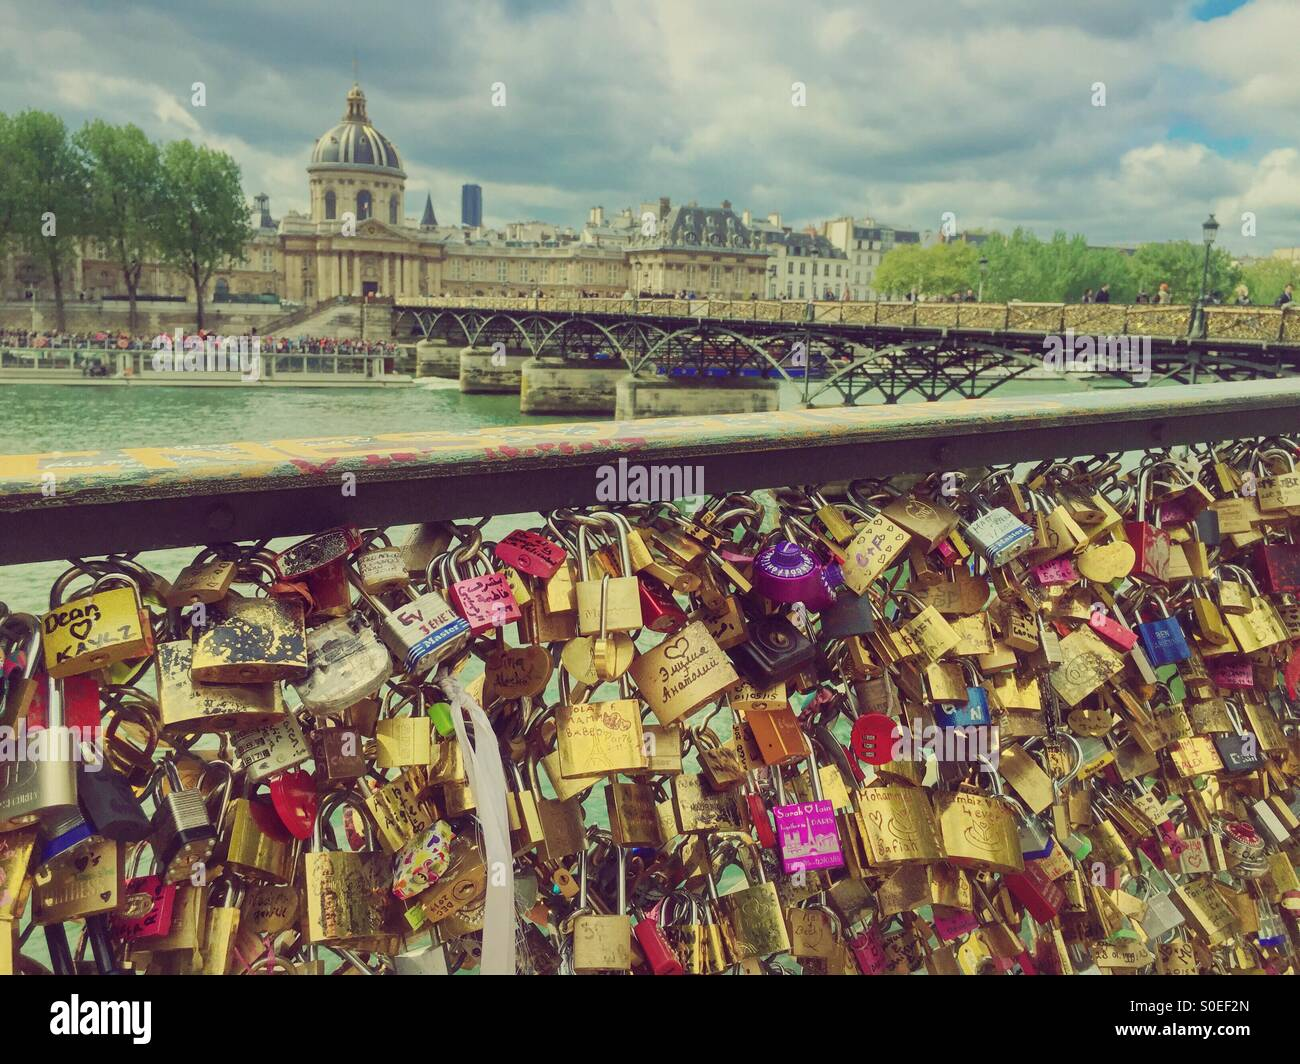 Pont des Arts or Passerelle des Arts, a pedestrian bridge in Paris, France with side panels covered in padlocks Stock Photo